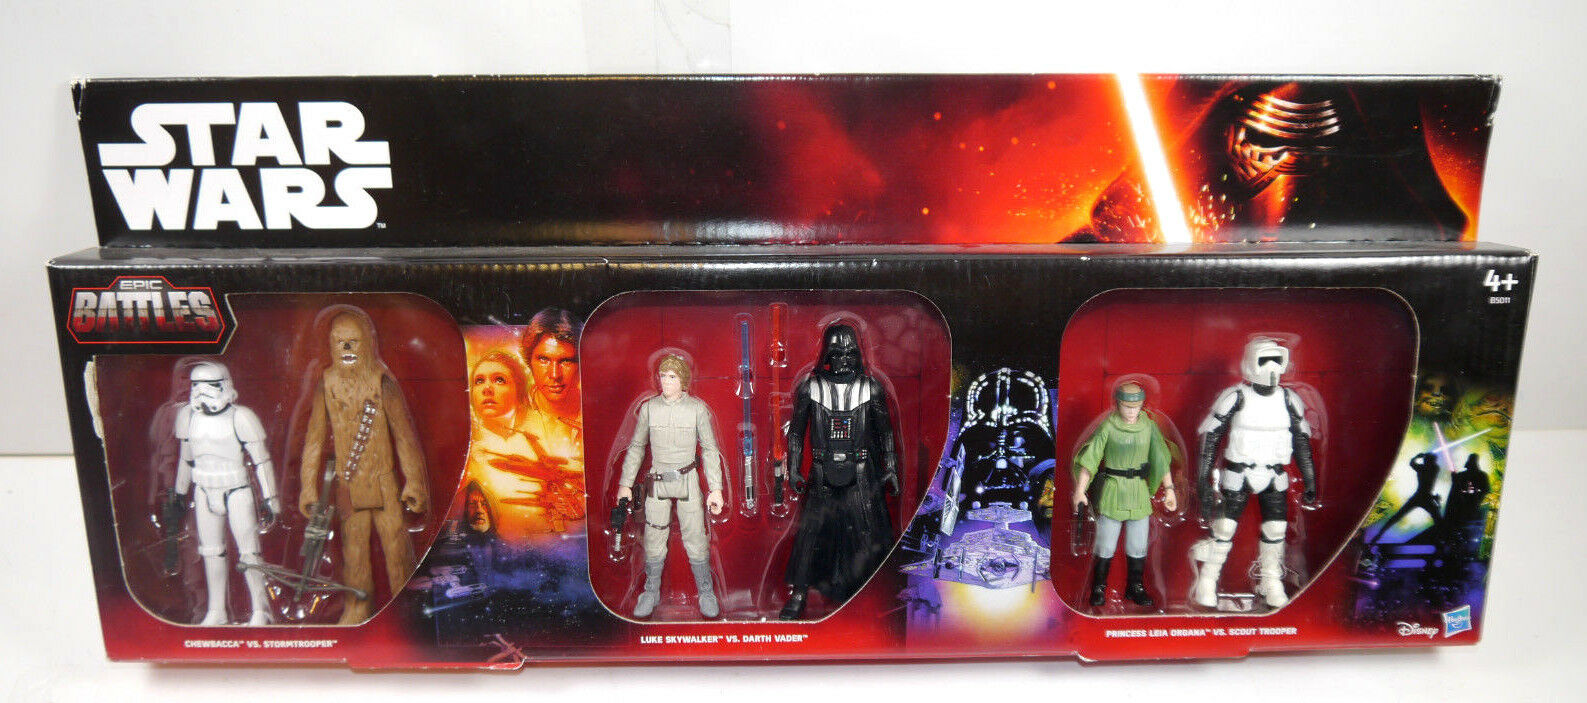 Star Wars Epic Battles B5011 6er Action Figure Set & Darth Vader Chewbacca